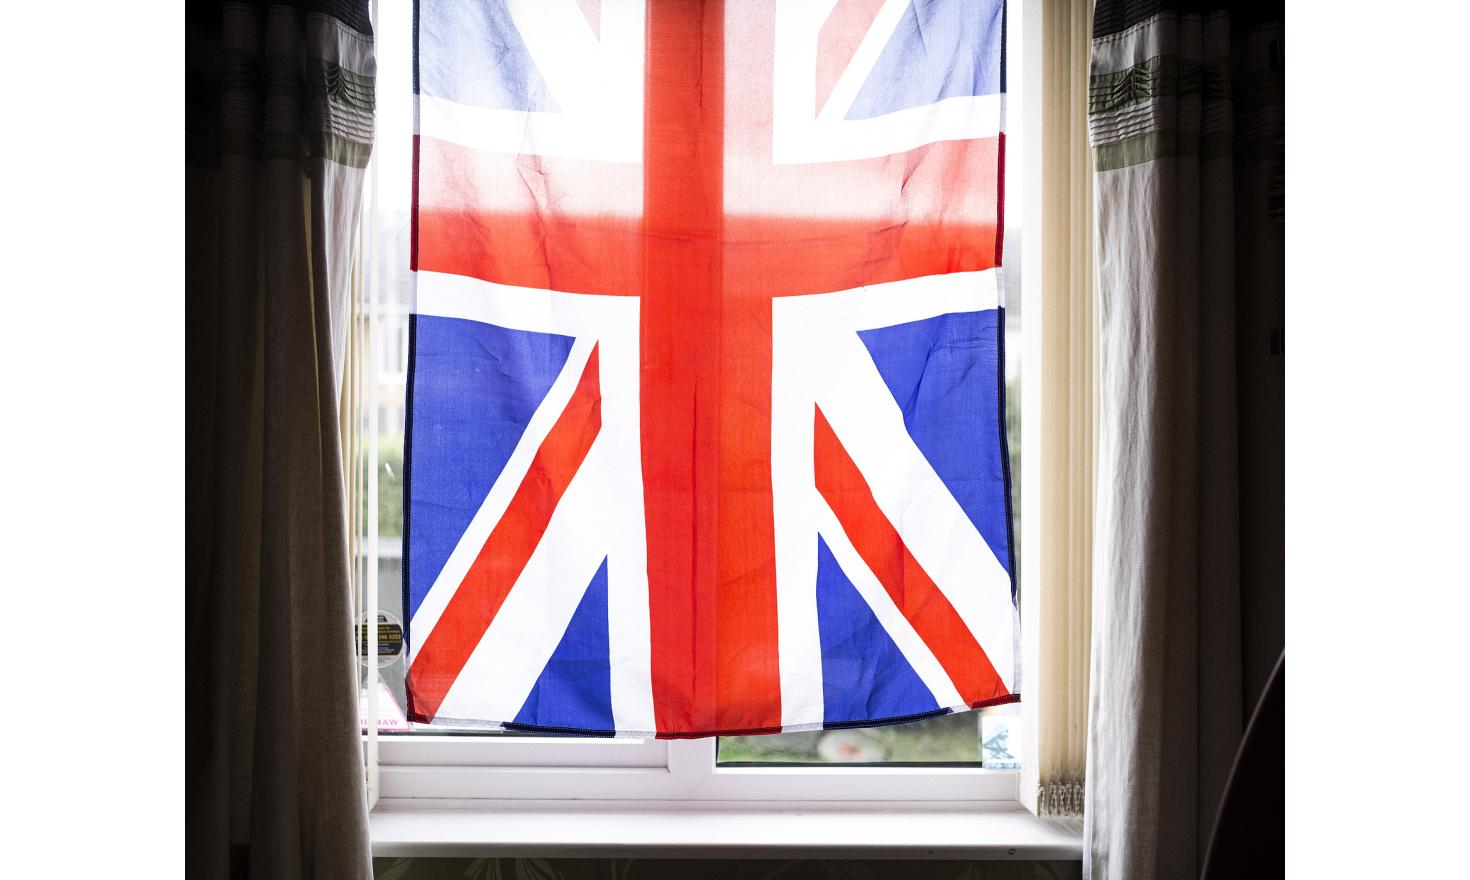 A Union Jack flag hangs in the window of Ashley Greenup's office at his home in Carlisle in the north-west of England.